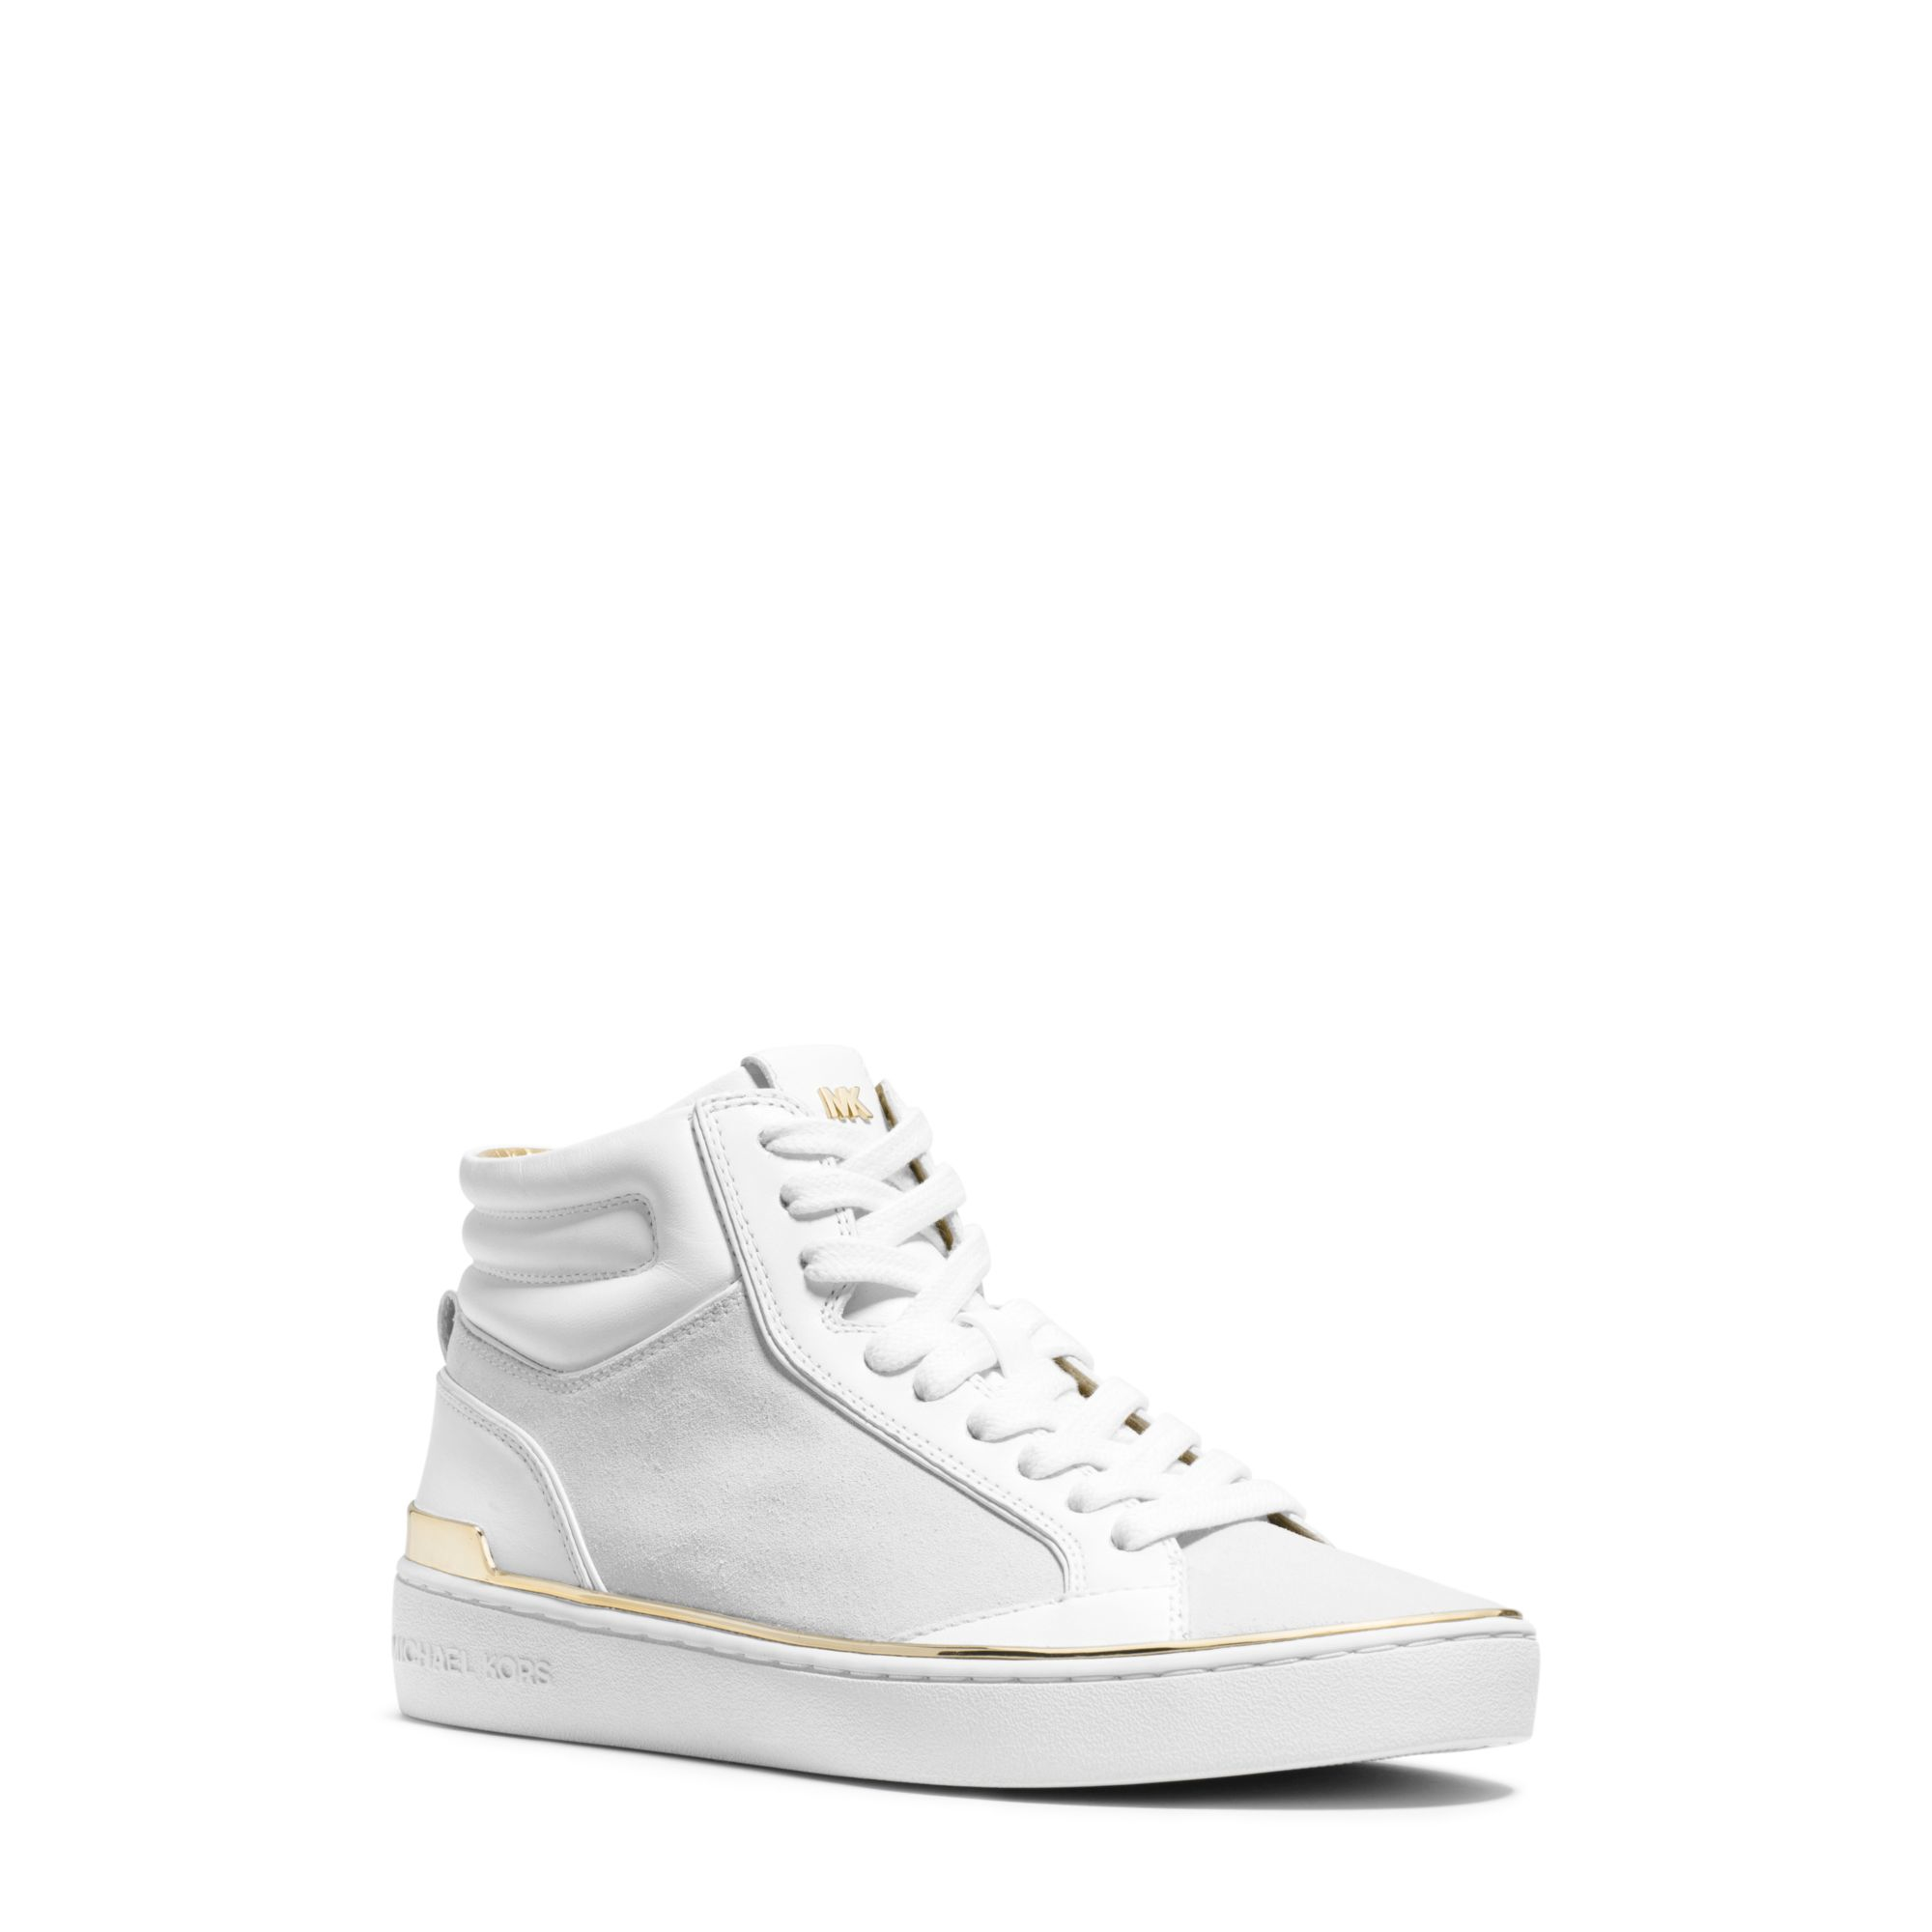 michael kors kyle leather and suede high top sneaker in white optic white lyst. Black Bedroom Furniture Sets. Home Design Ideas